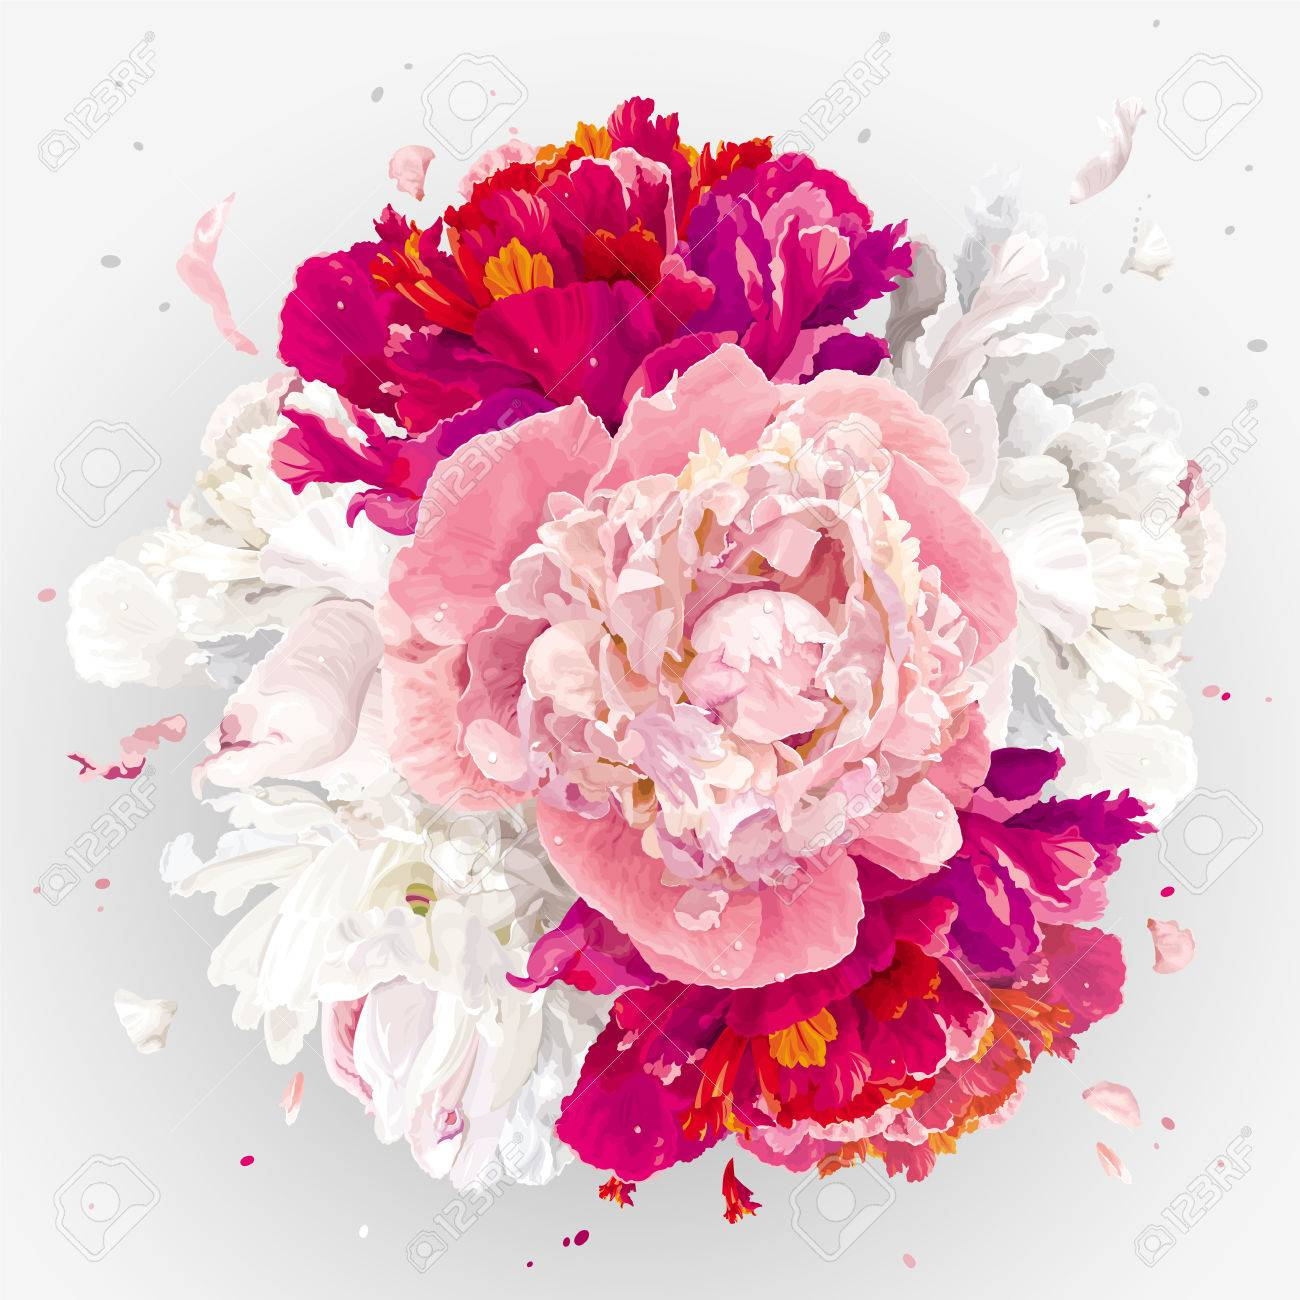 Luxurious Pink Red And White Peony Flower Spherical Composition Royalty Free Cliparts Vectors And Stock Illustration Image 69648442